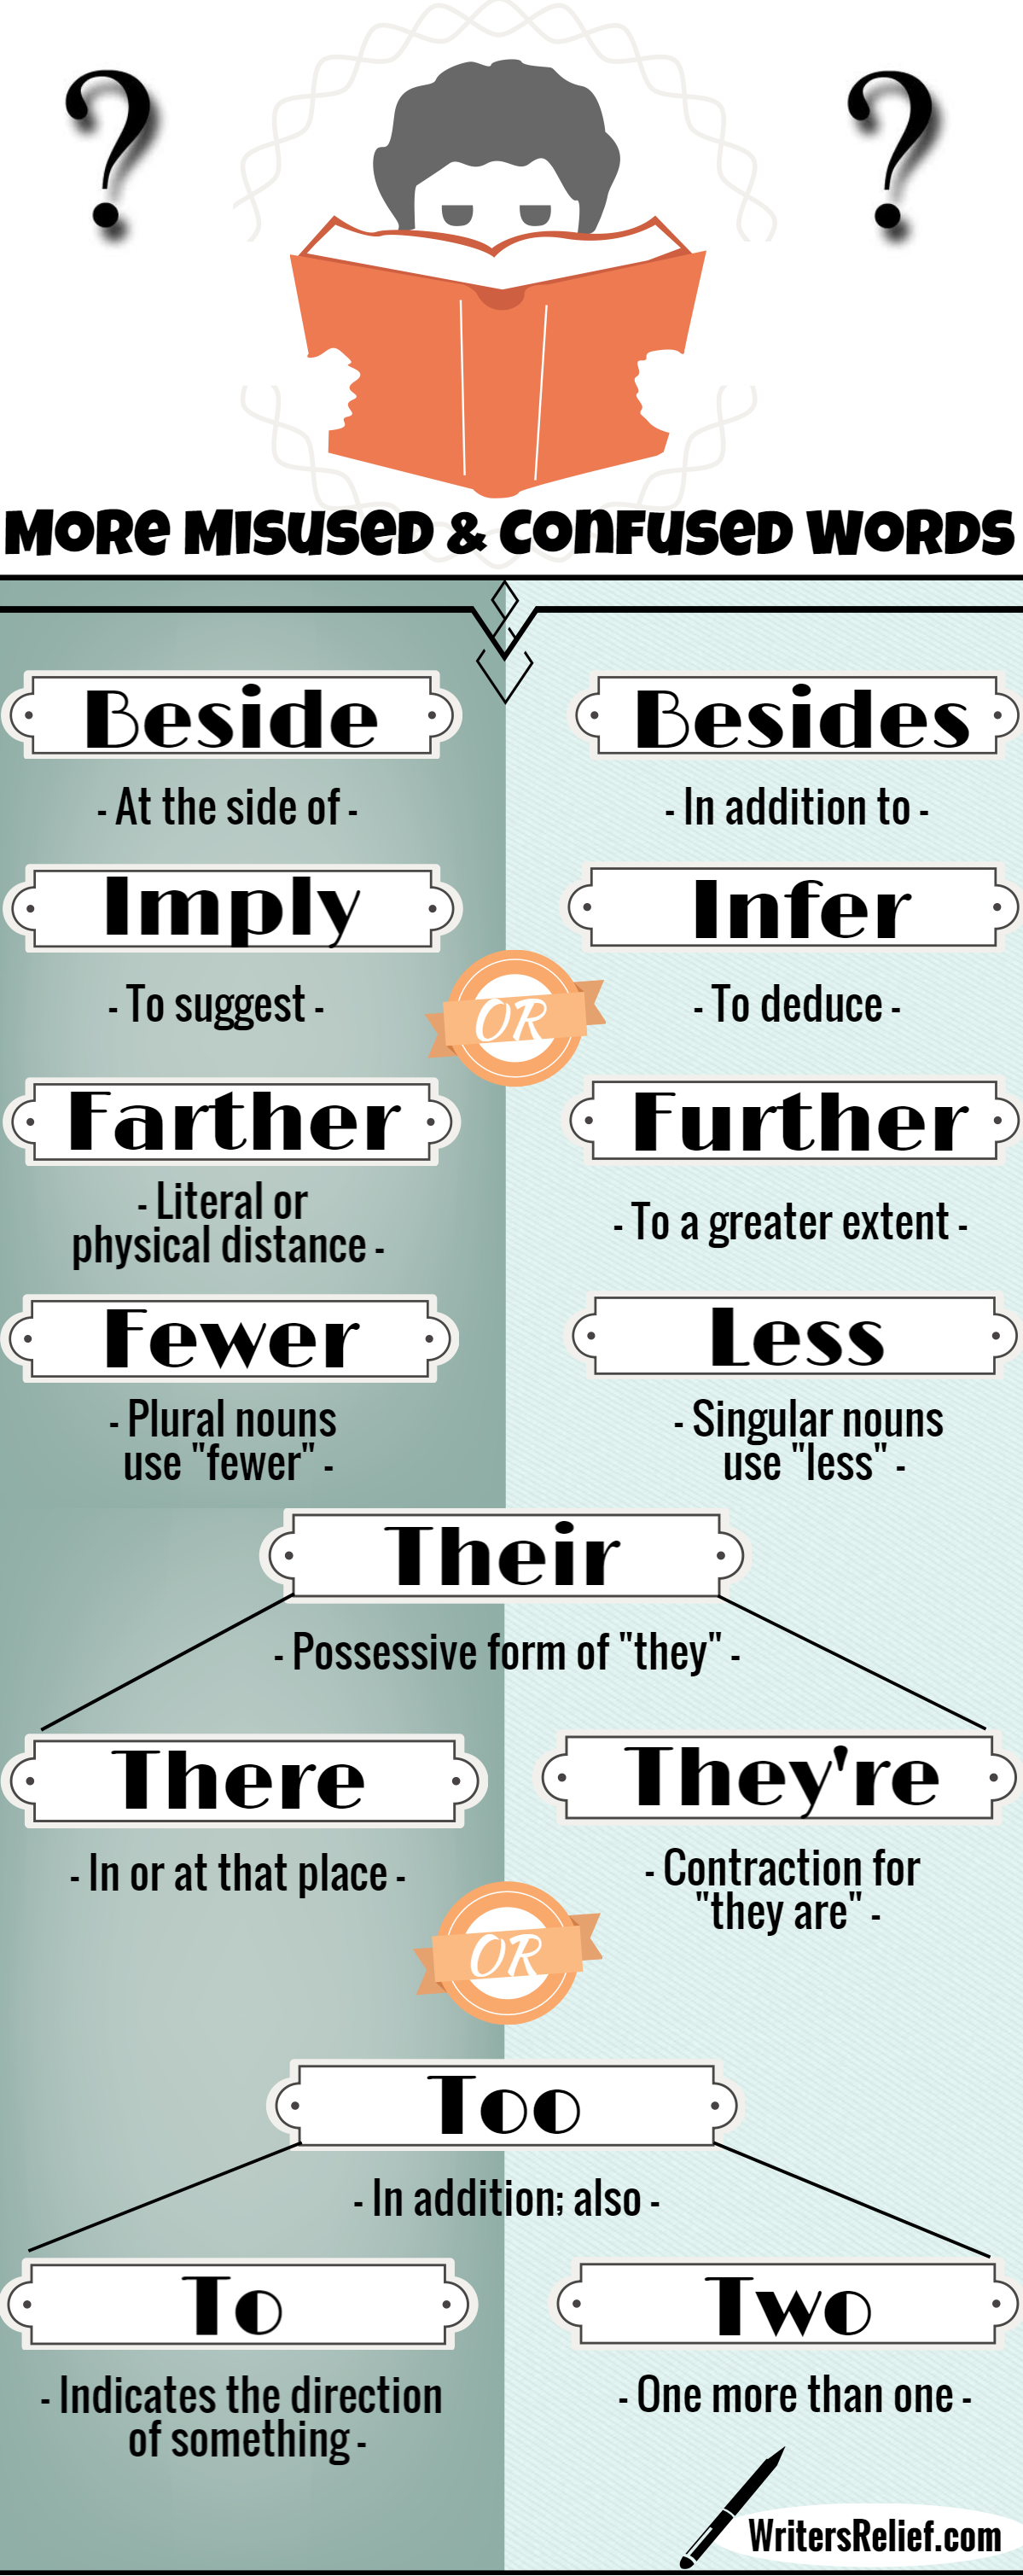 Cheat Sheet 2 More Misused And Confused Words